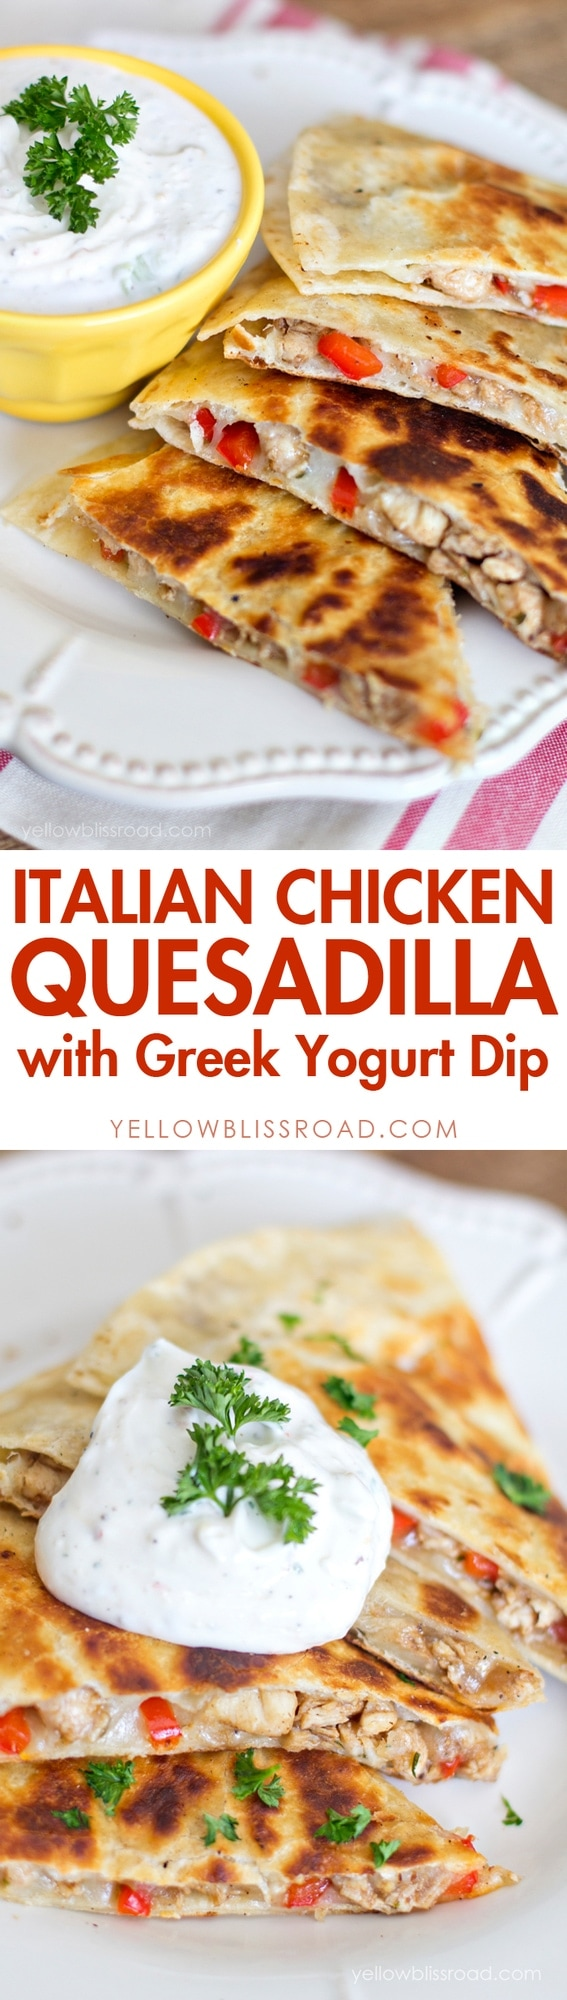 Italian Chicken Quesadillas with Greek Yogurt Dip